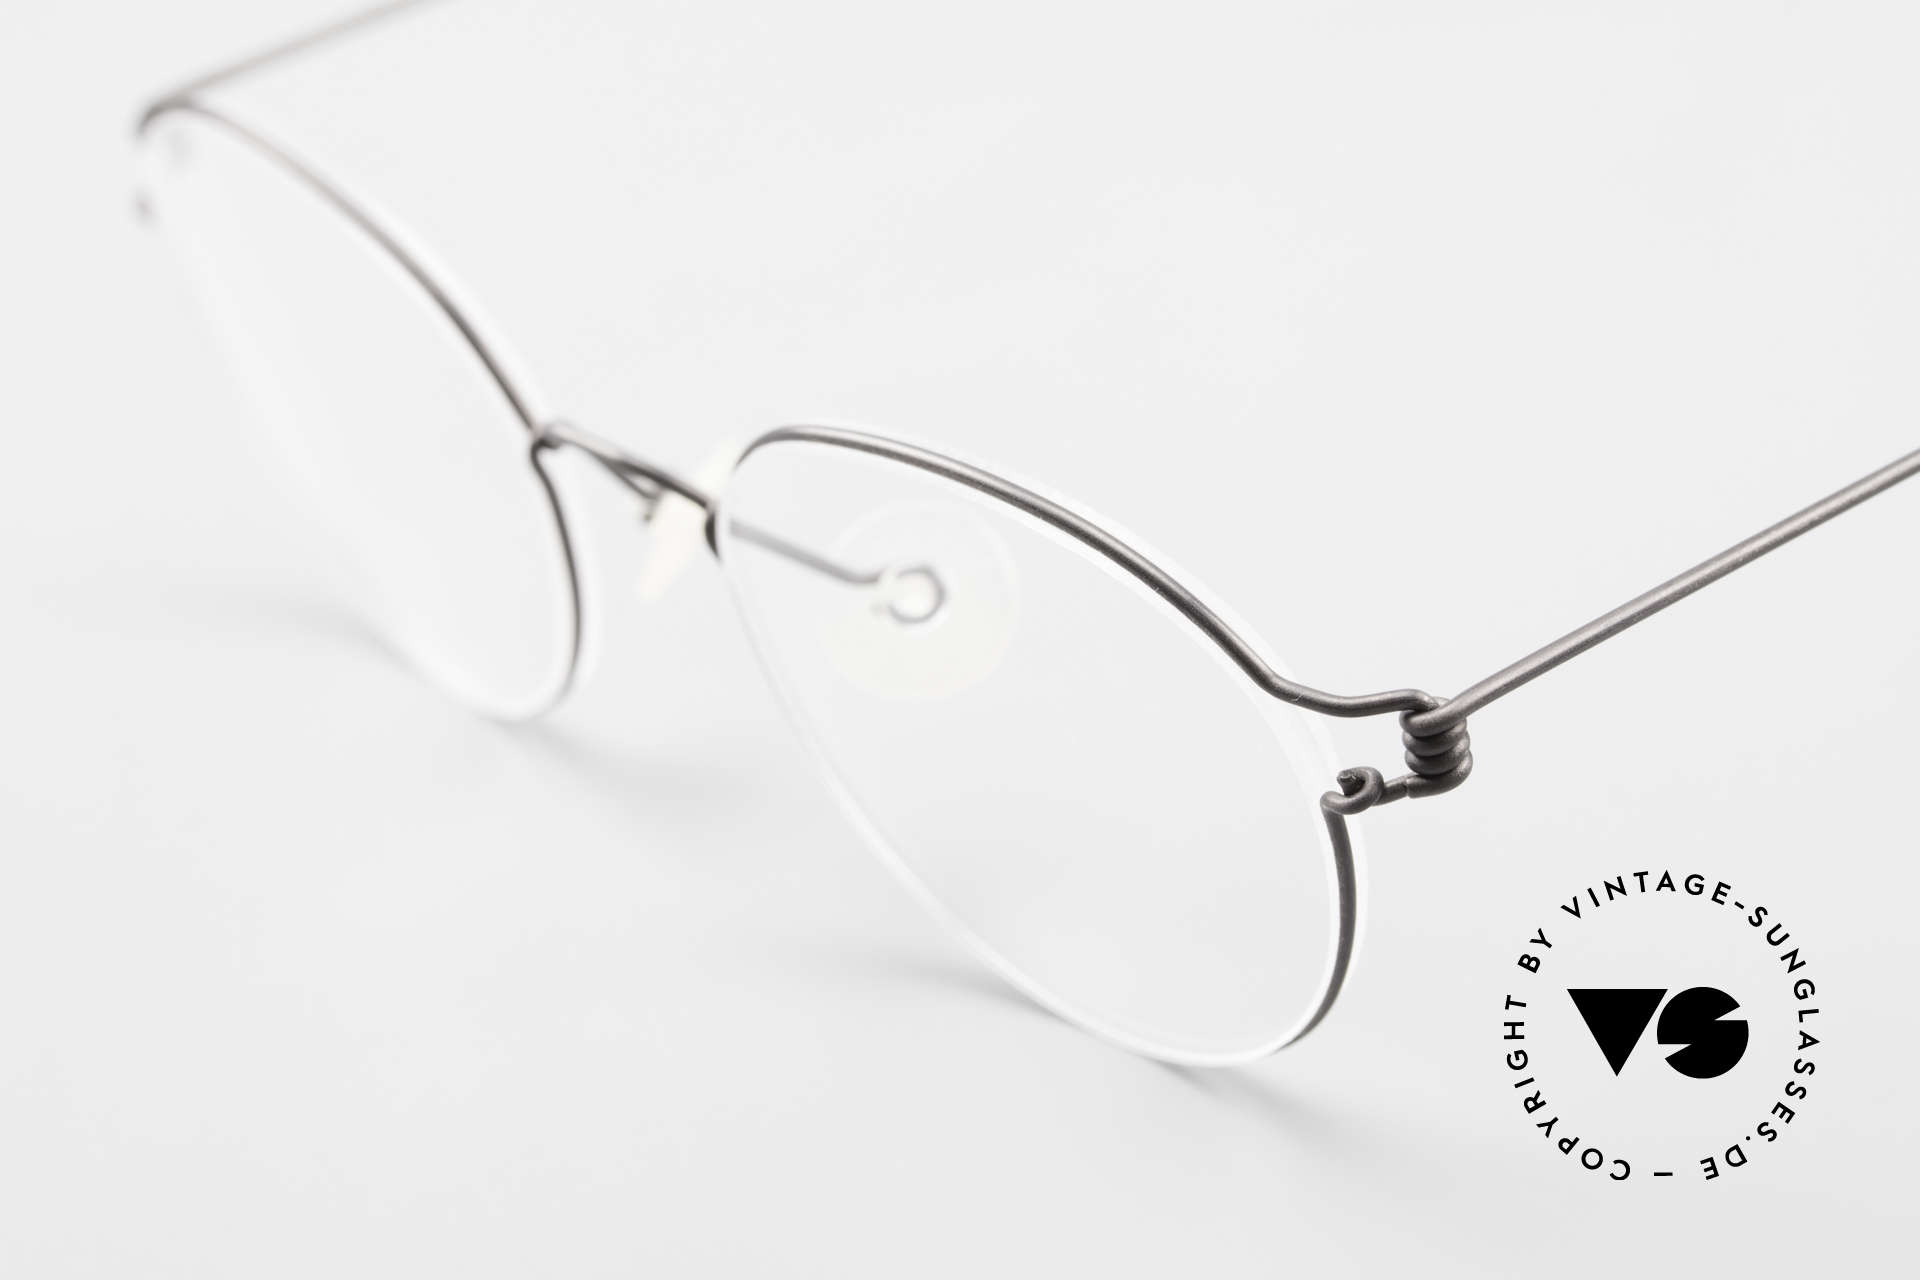 Lindberg Panto Air Titan Rim X Small Titanium Frame Panto, extremely strong, resilient and flexible (and 3g only!), Made for Men and Women